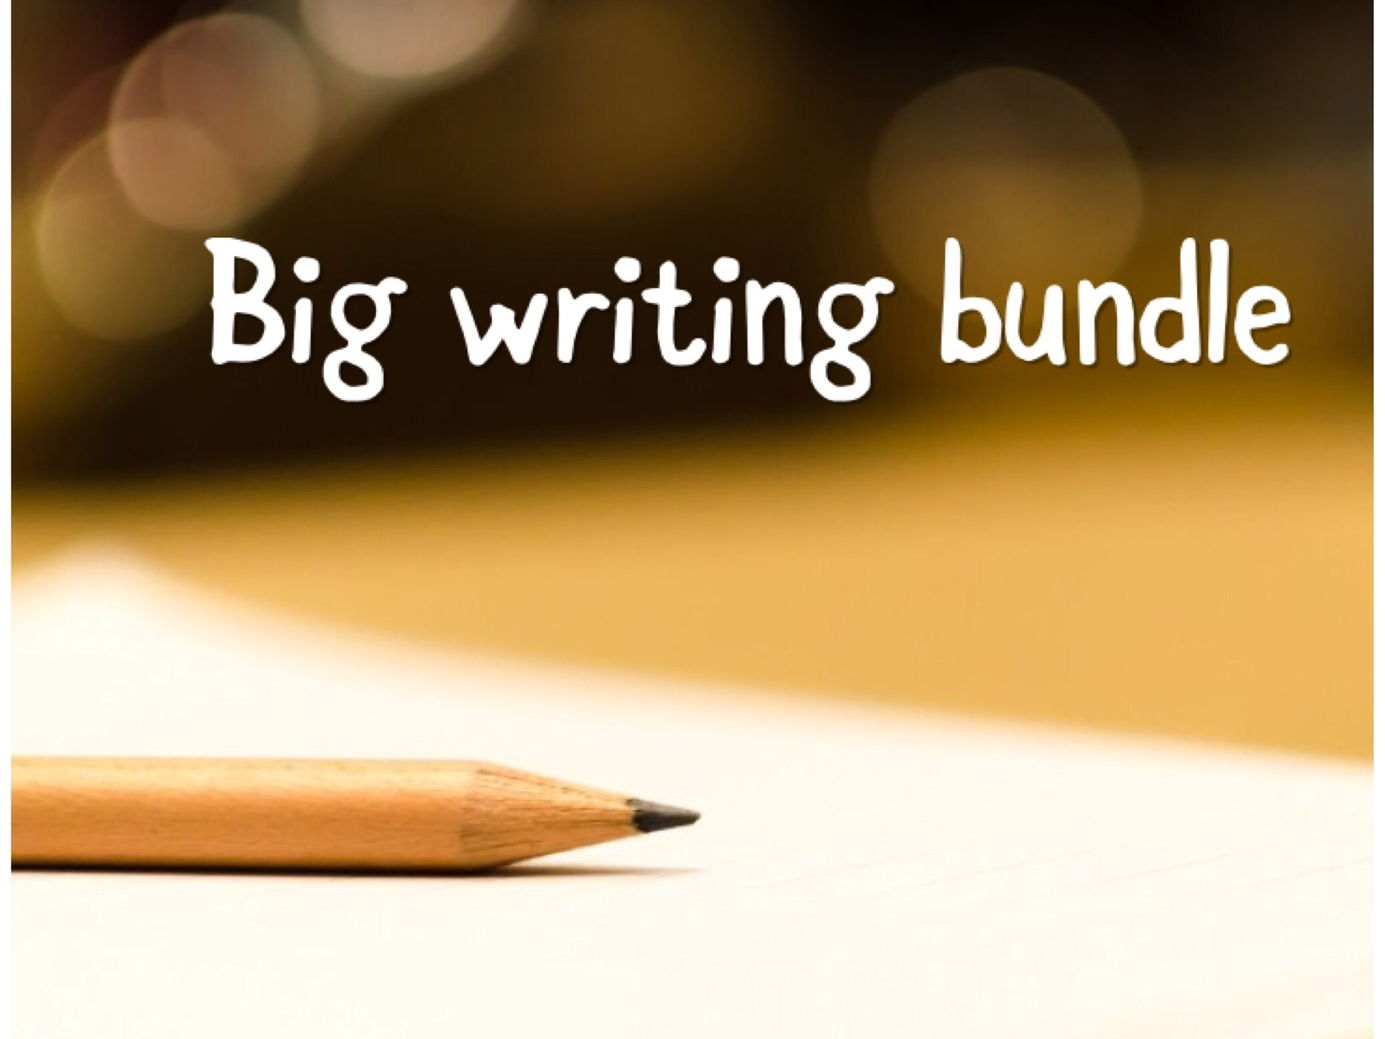 Writing bundle imaginative descriptive writing and transactional non fiction writing